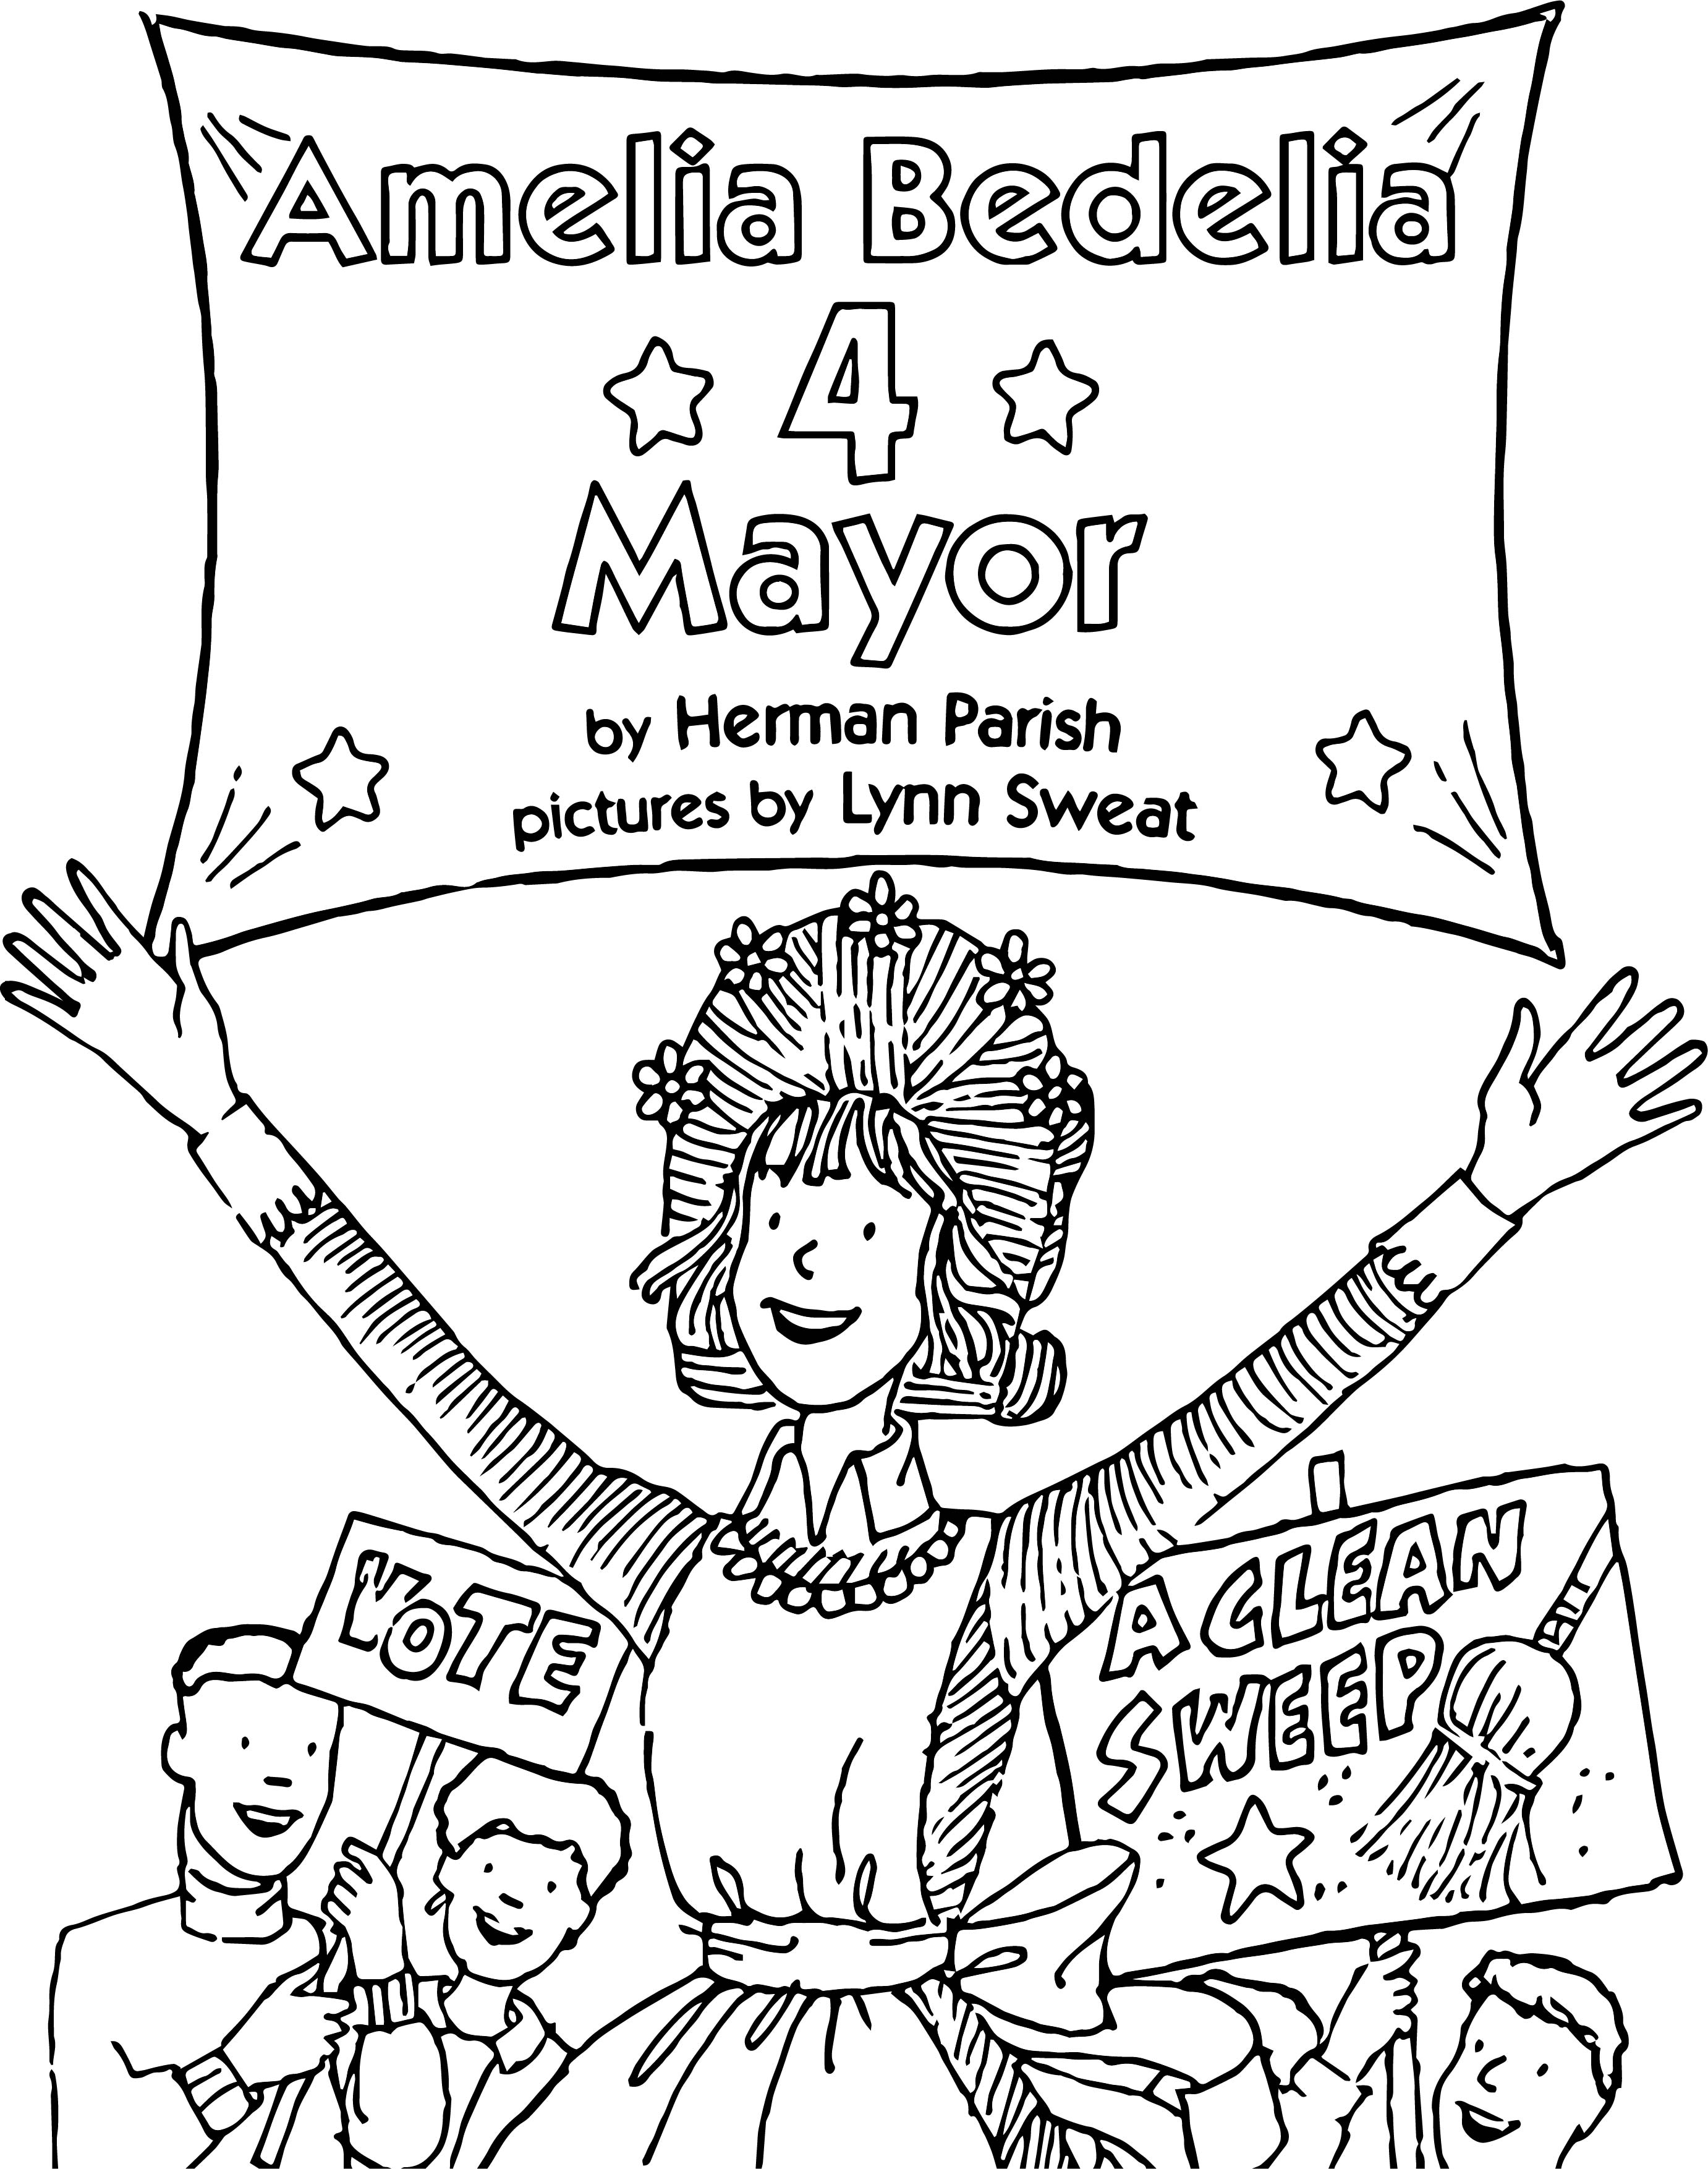 amelia bedelia coloring pages images for adults | Amelia Bedelia Mayor Coloring Page | Wecoloringpage.com